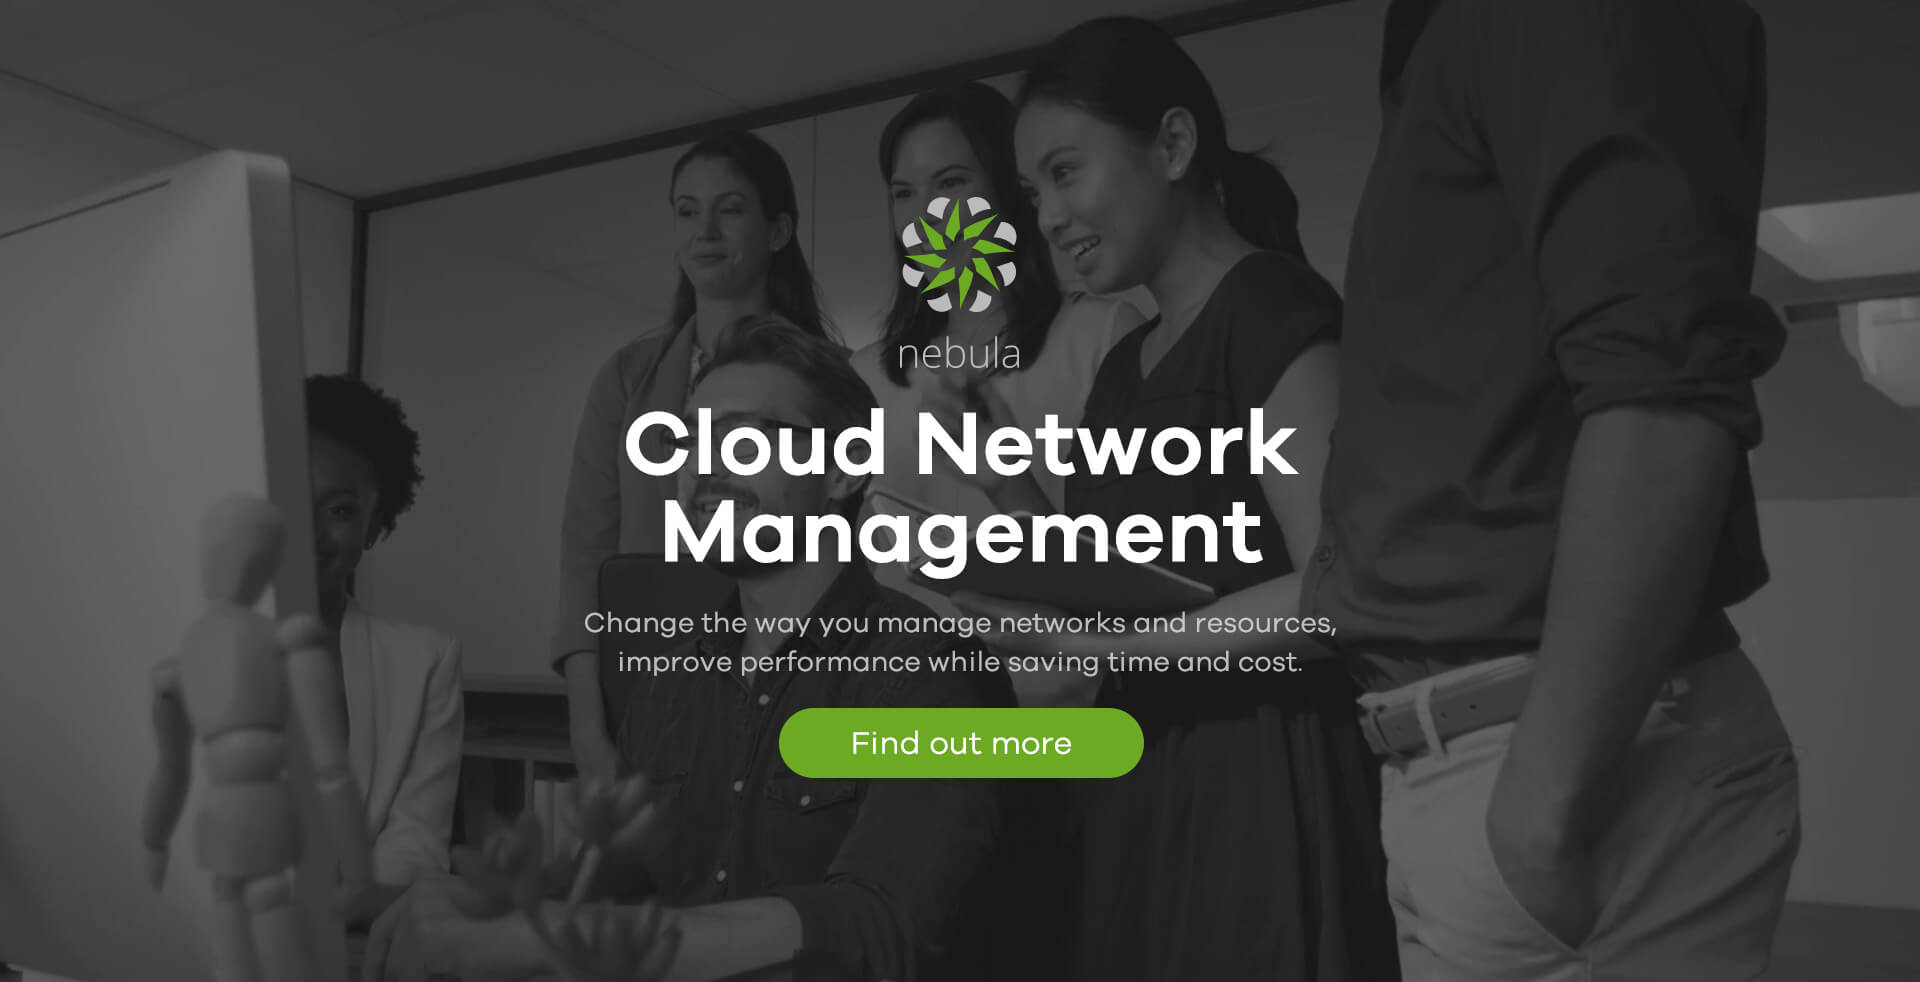 Cloud Network Management